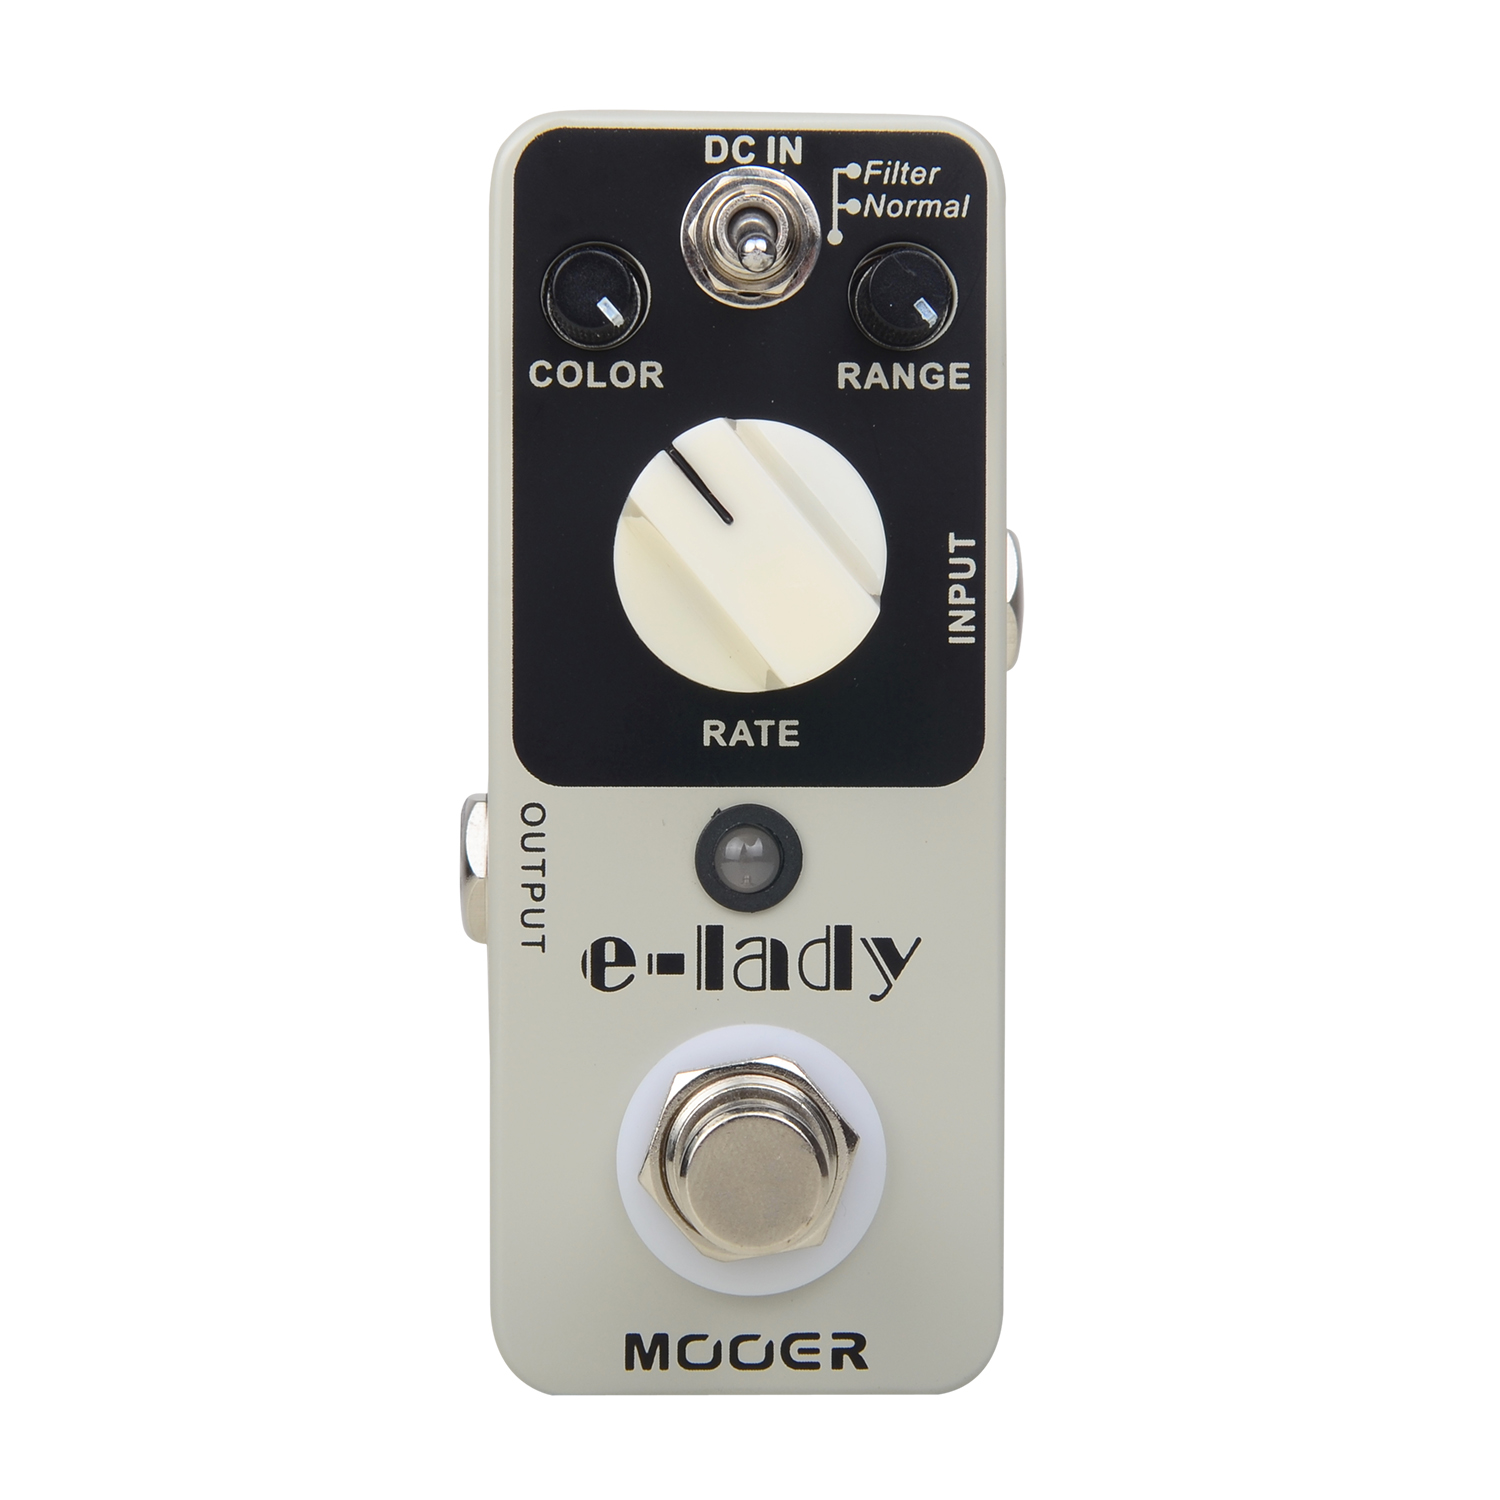 Mooer E-lady Flanger Analog Effects Electric Guitar Effect Pedal Metal Shell True bypass MFL1 автозапчасть sea horse 323 1 8